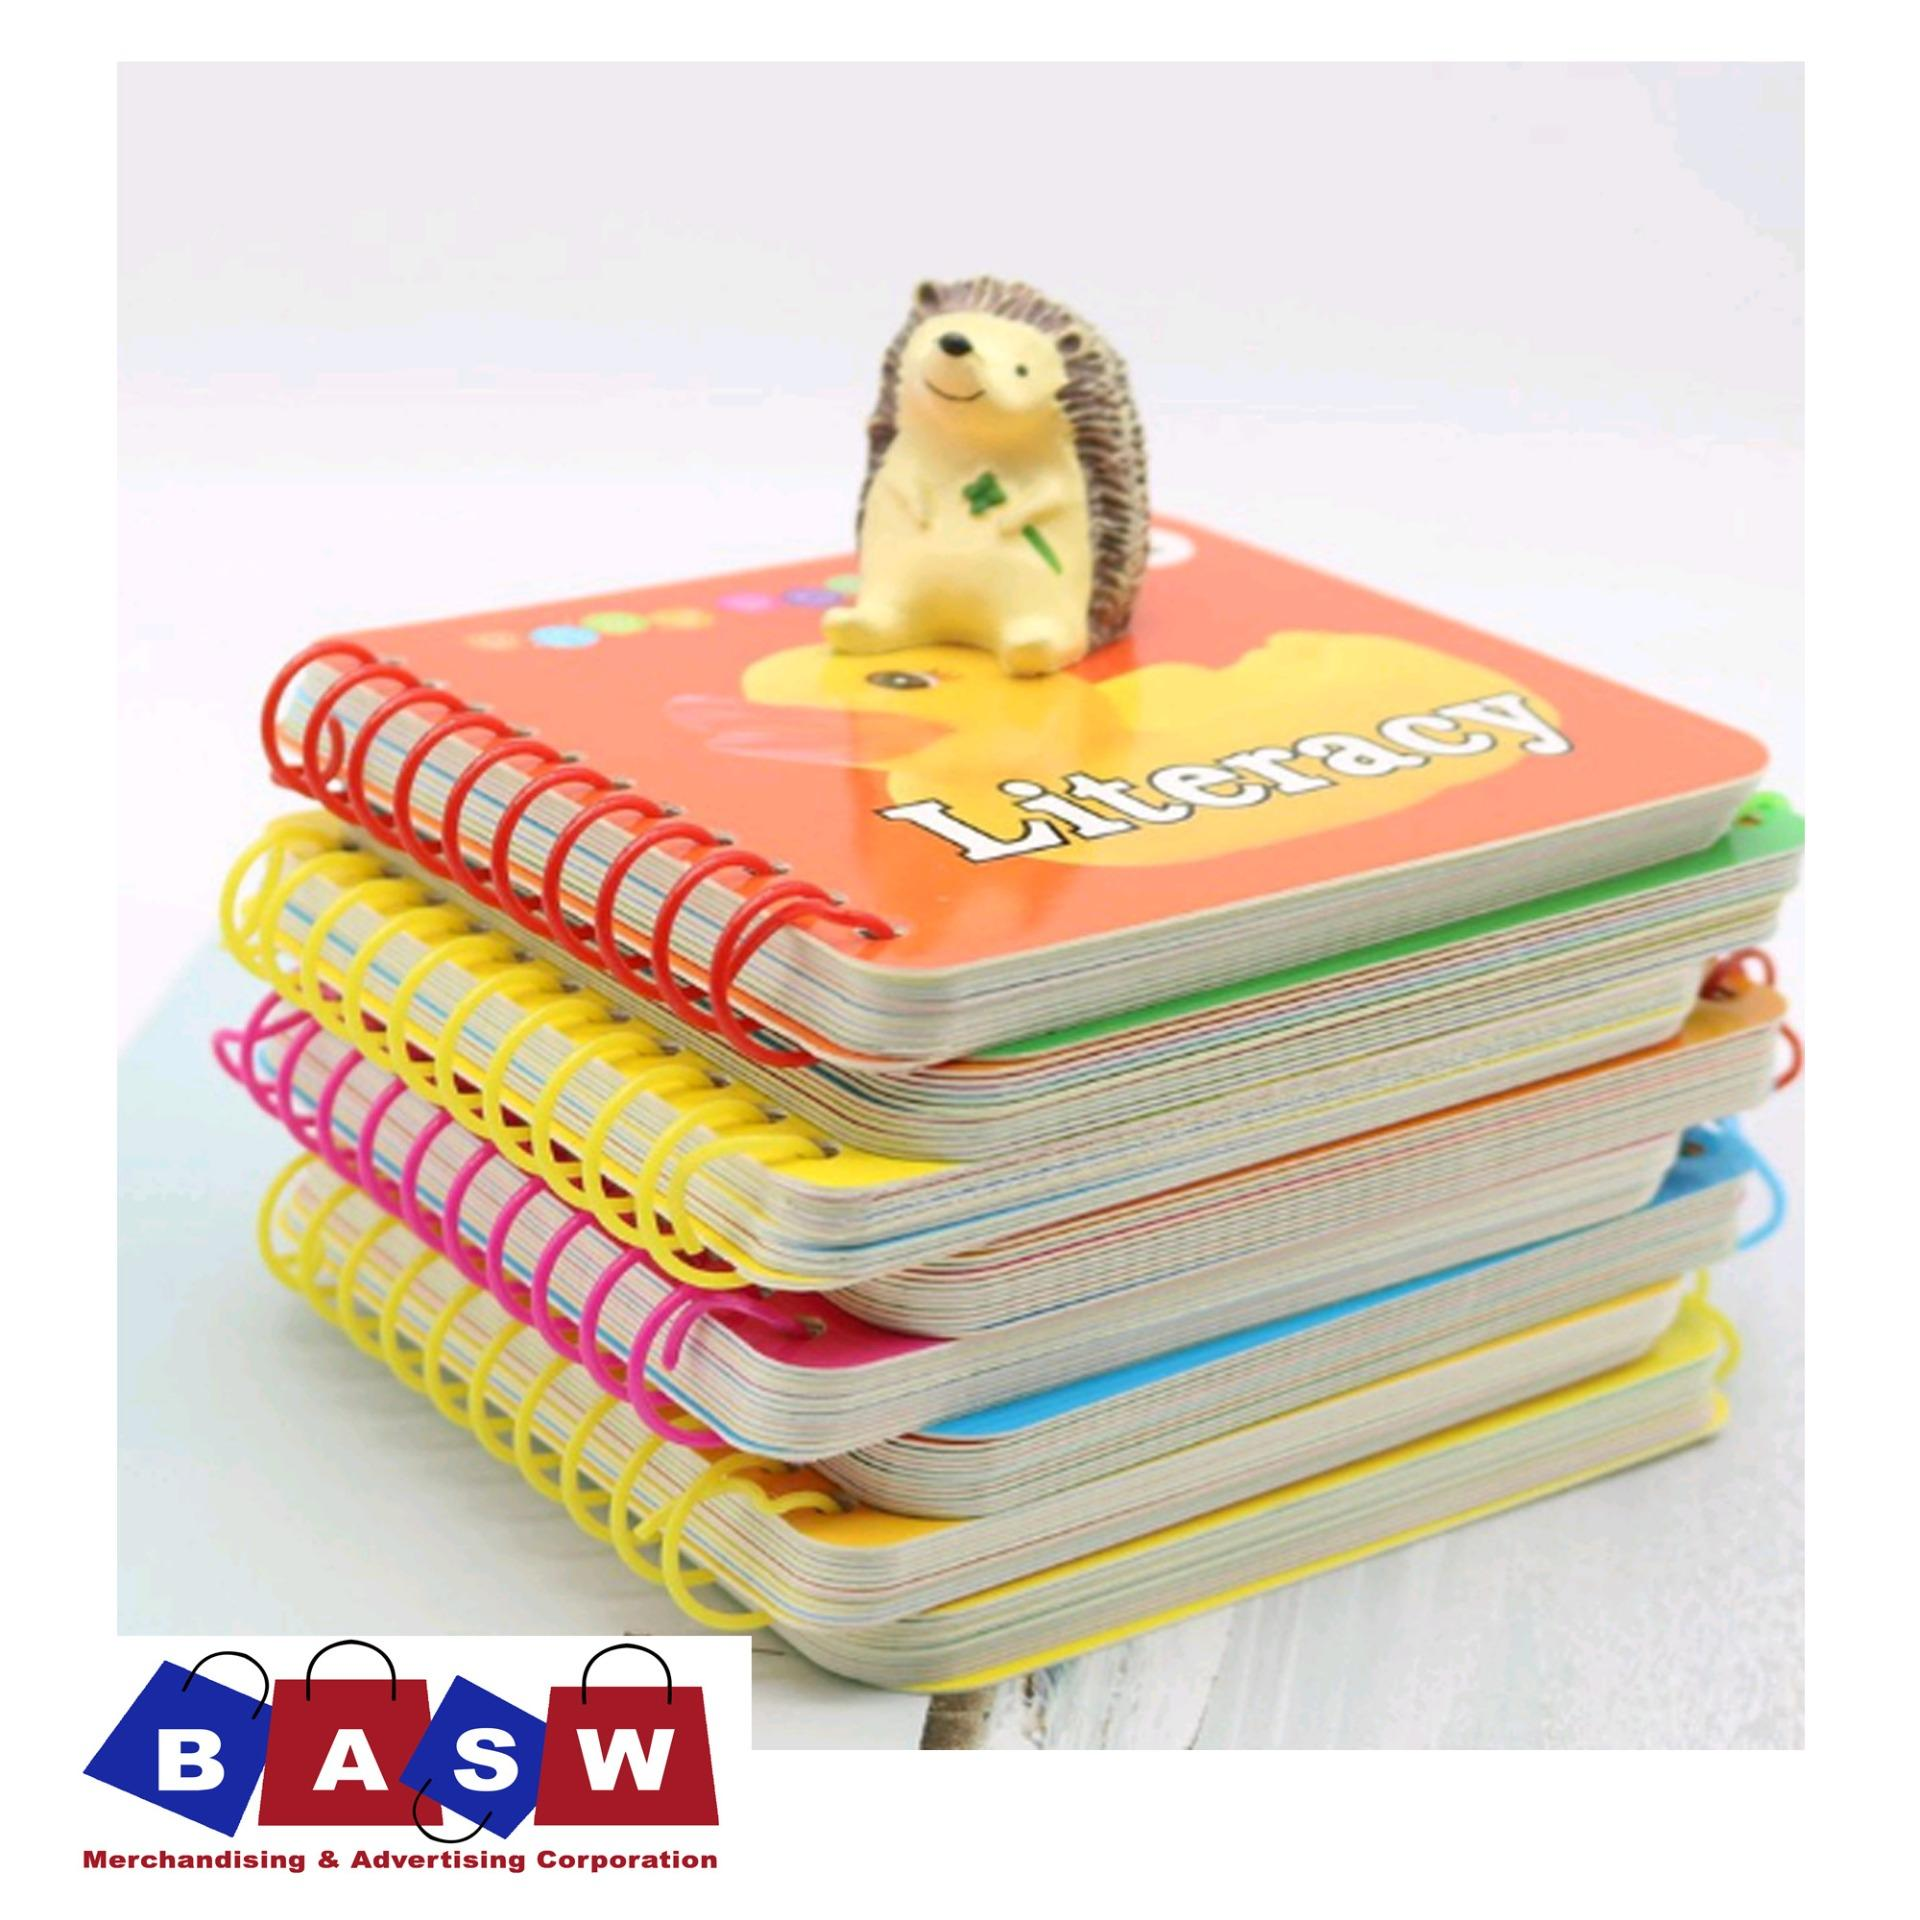 Kids Learning Flash Cards Baby Books Educational Books Kids Todler Learning Books 5pcs By Basw Merchandising.